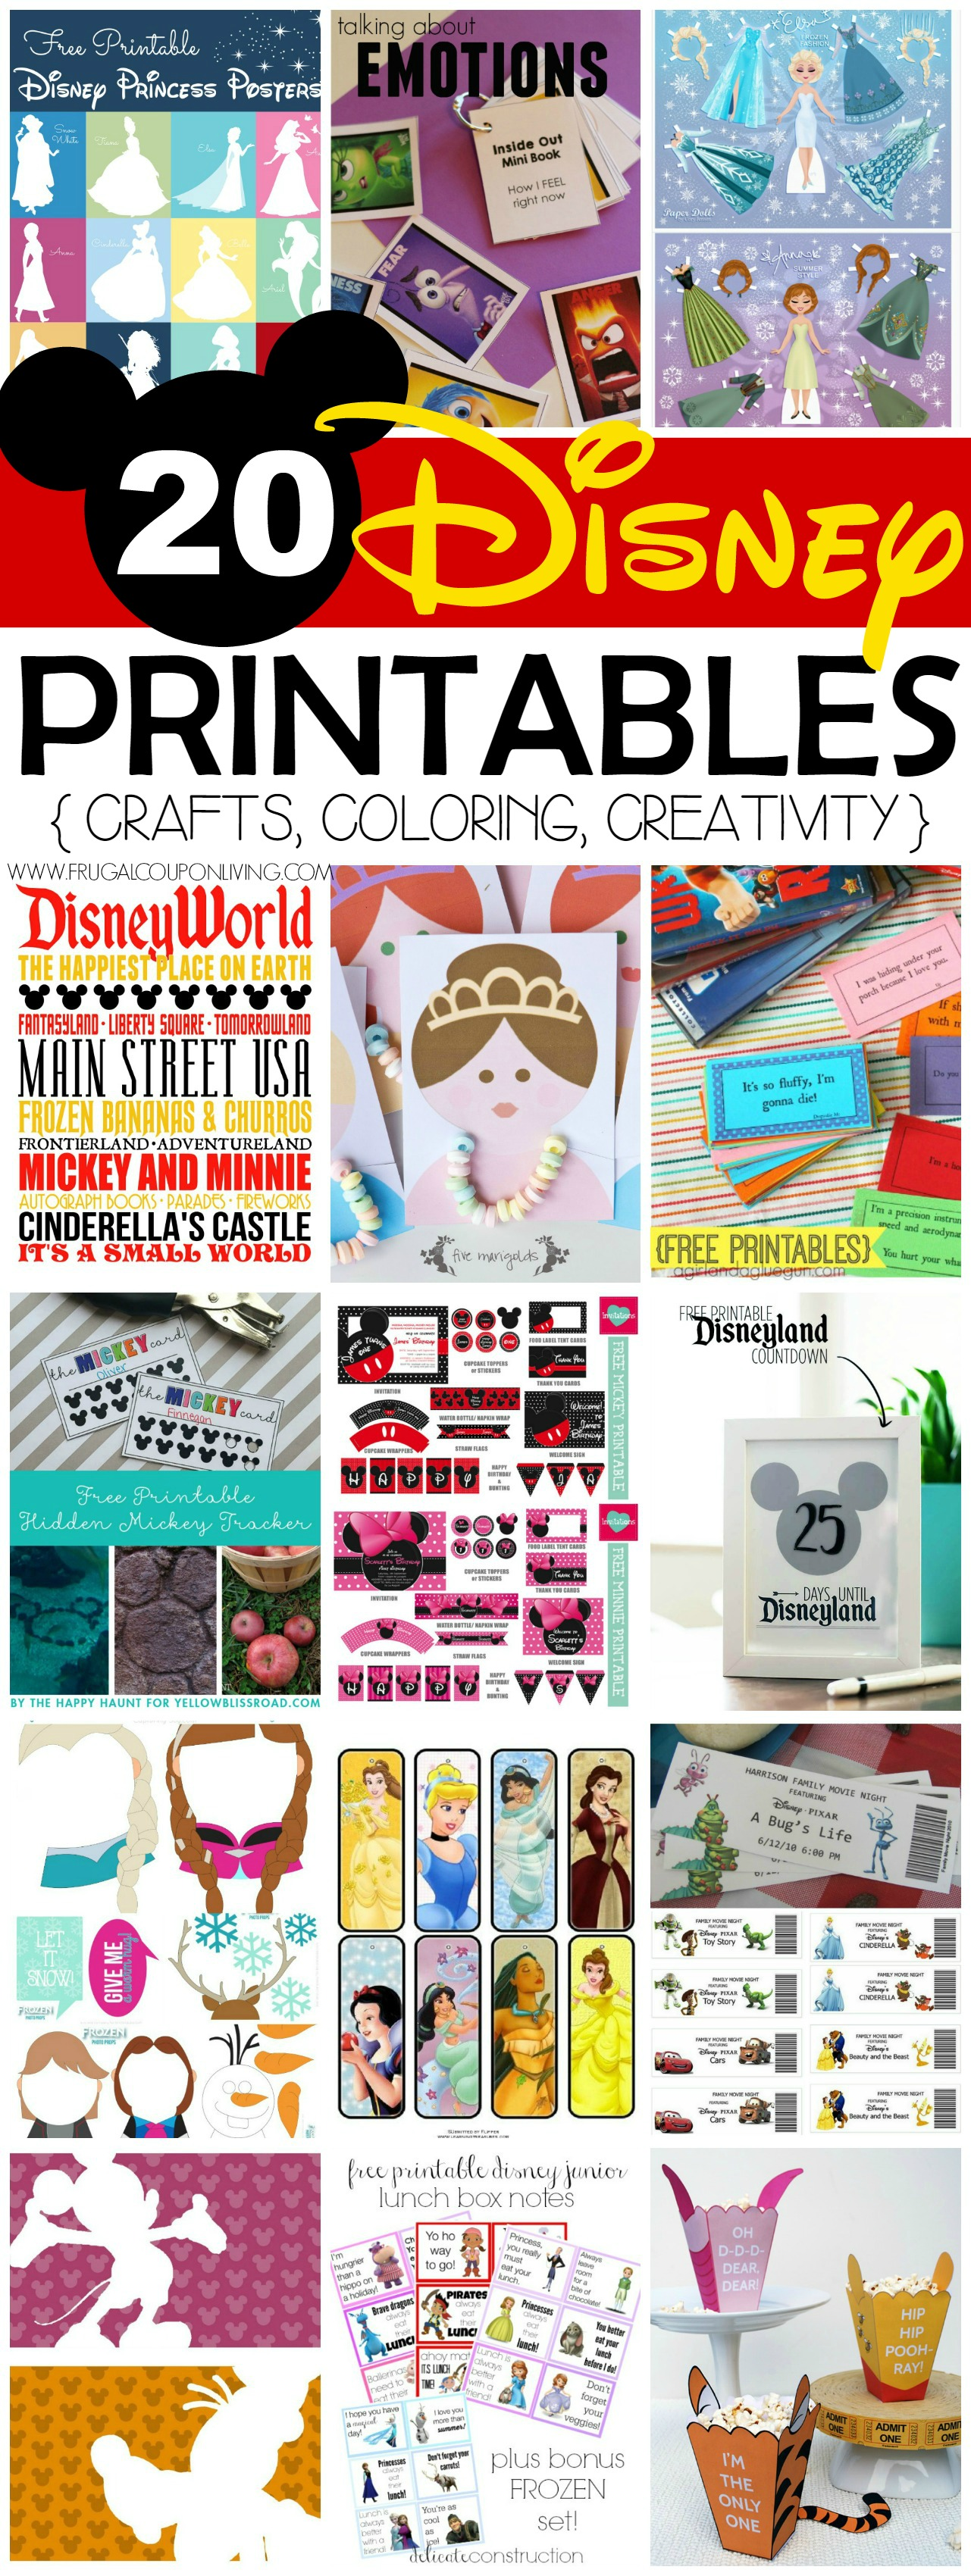 photograph regarding Disney Dollars Printable identified as 20 Cost-free Disney Printables - Crafts, Coloring, Creative imagination